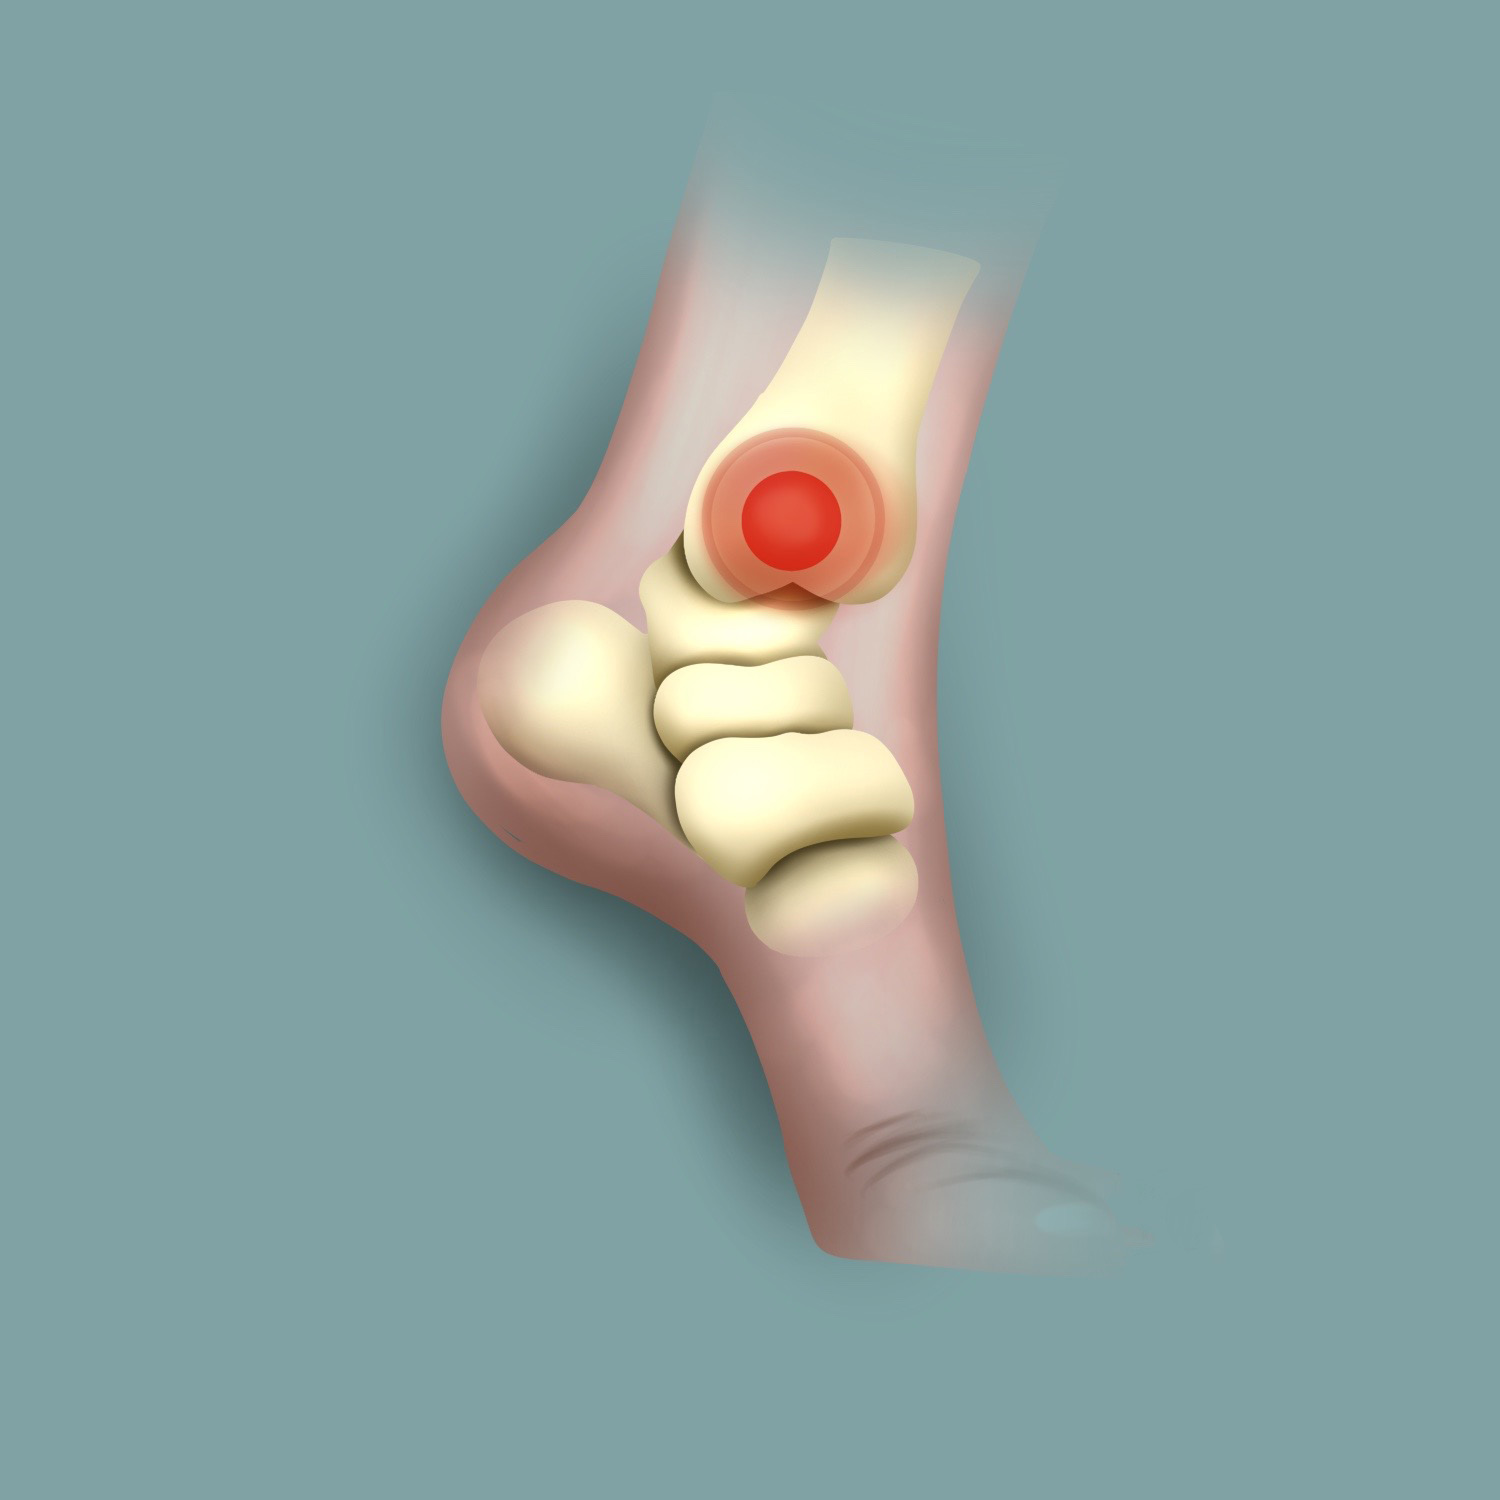 Foot/ankle pain